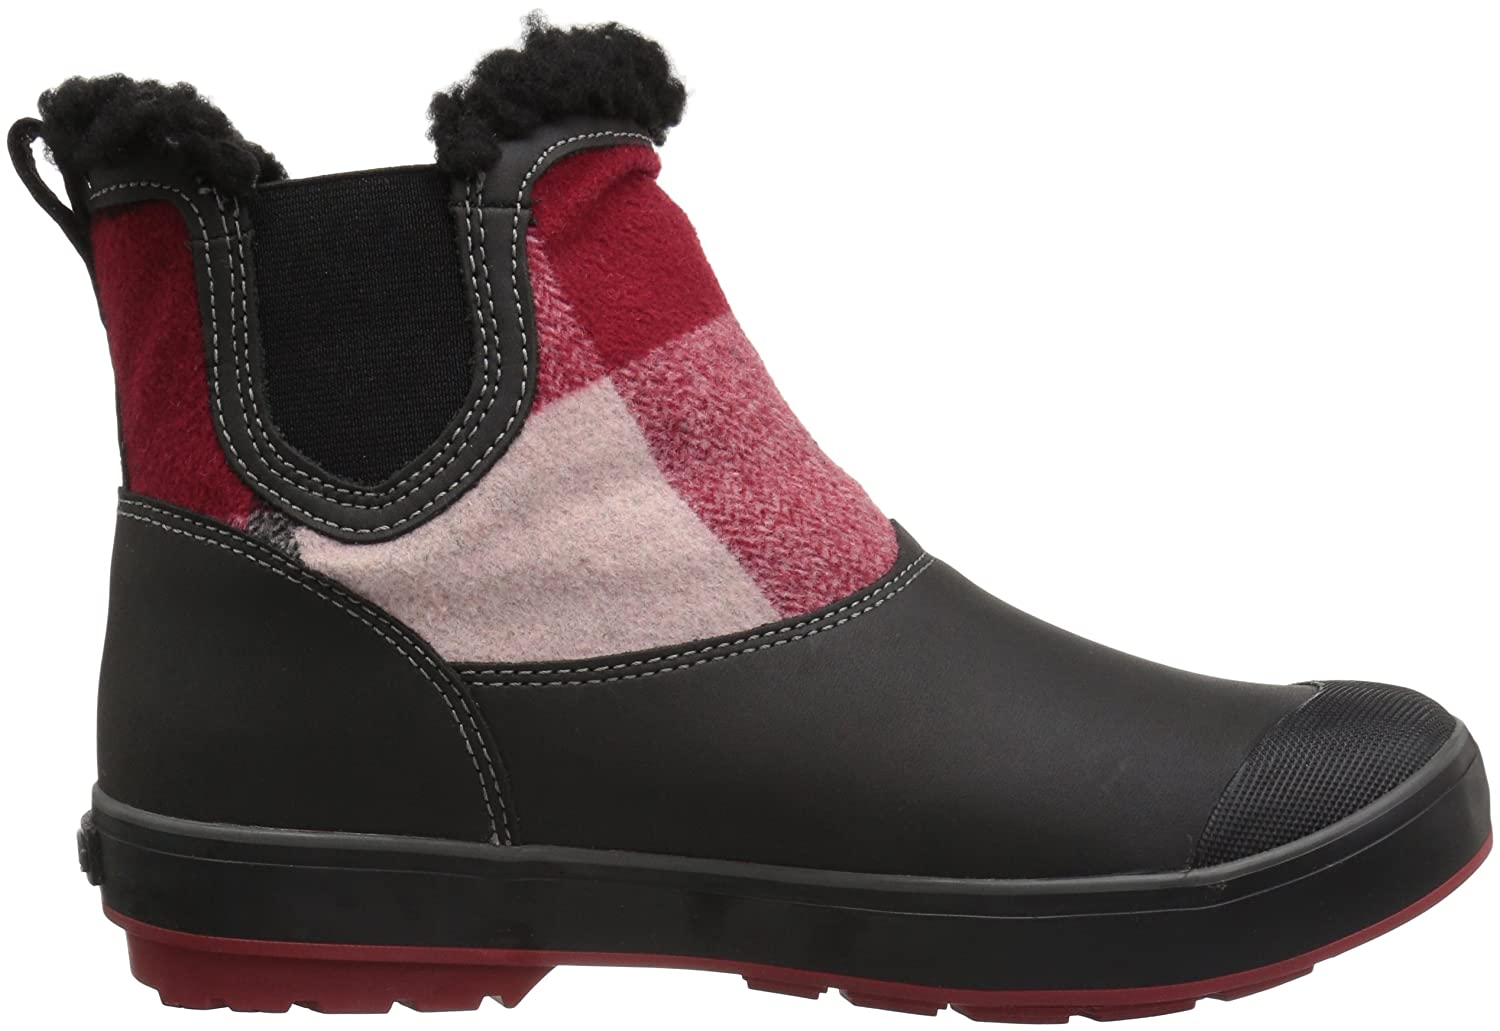 KEEN Women's Elsa Chelsea Waterproof Boot B01N53GSLX 9 B(M) US|Red Dahlia Wool